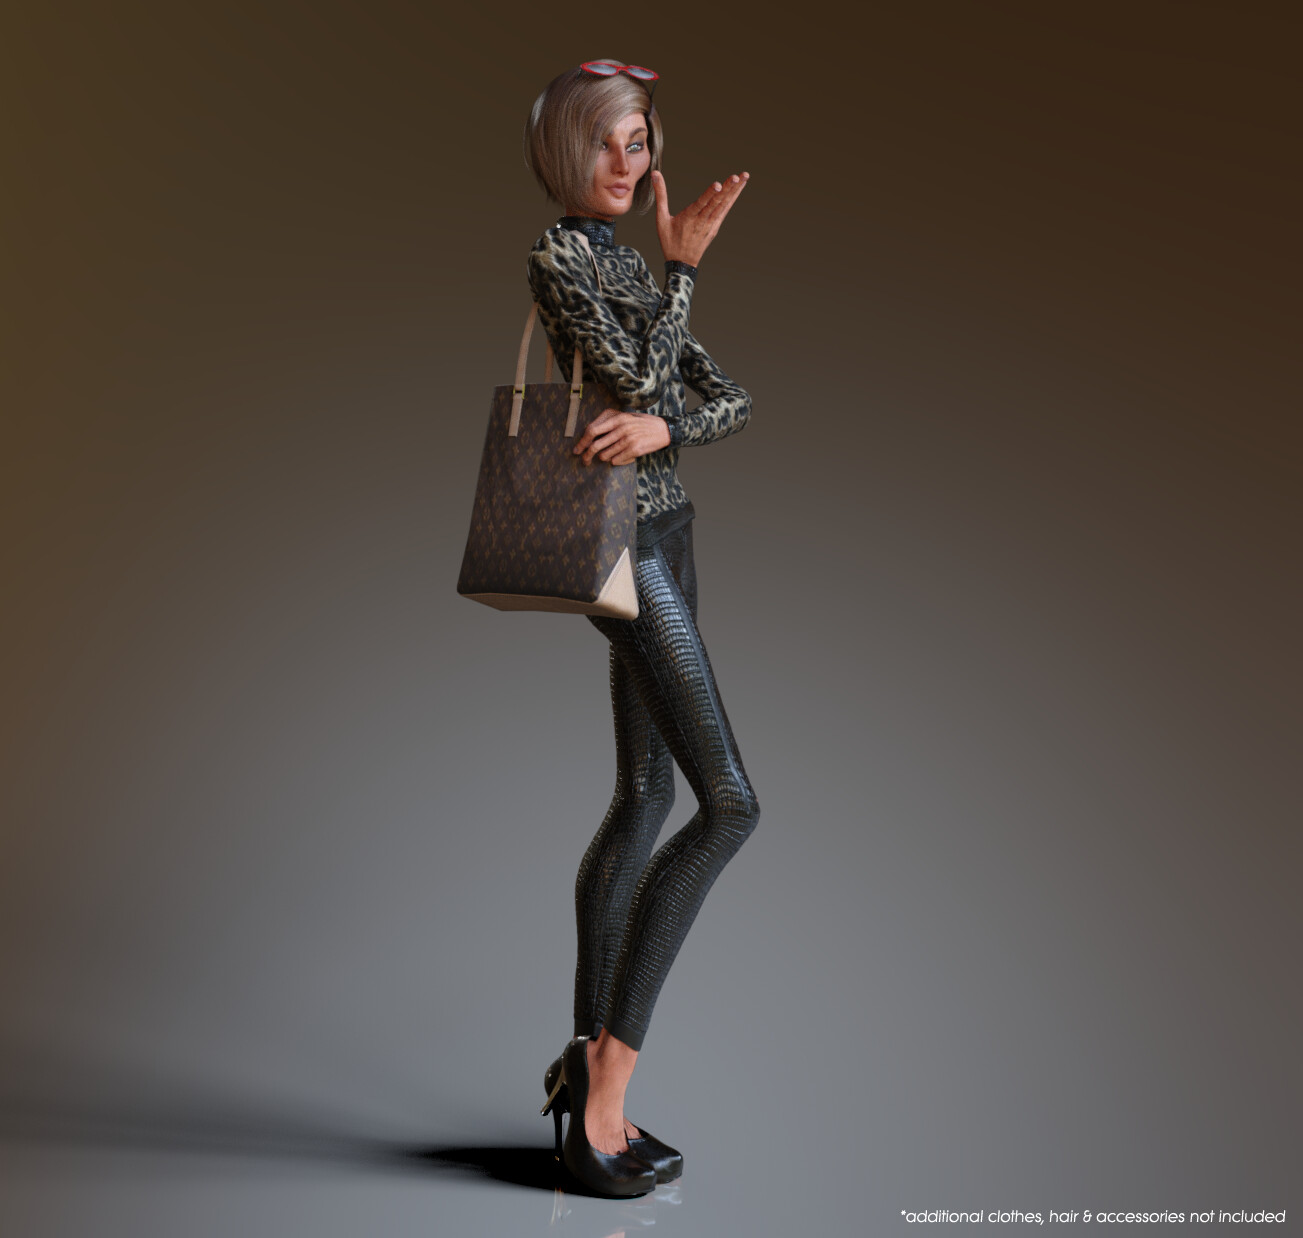 CC3 Stylized Base Female - Slim Morph